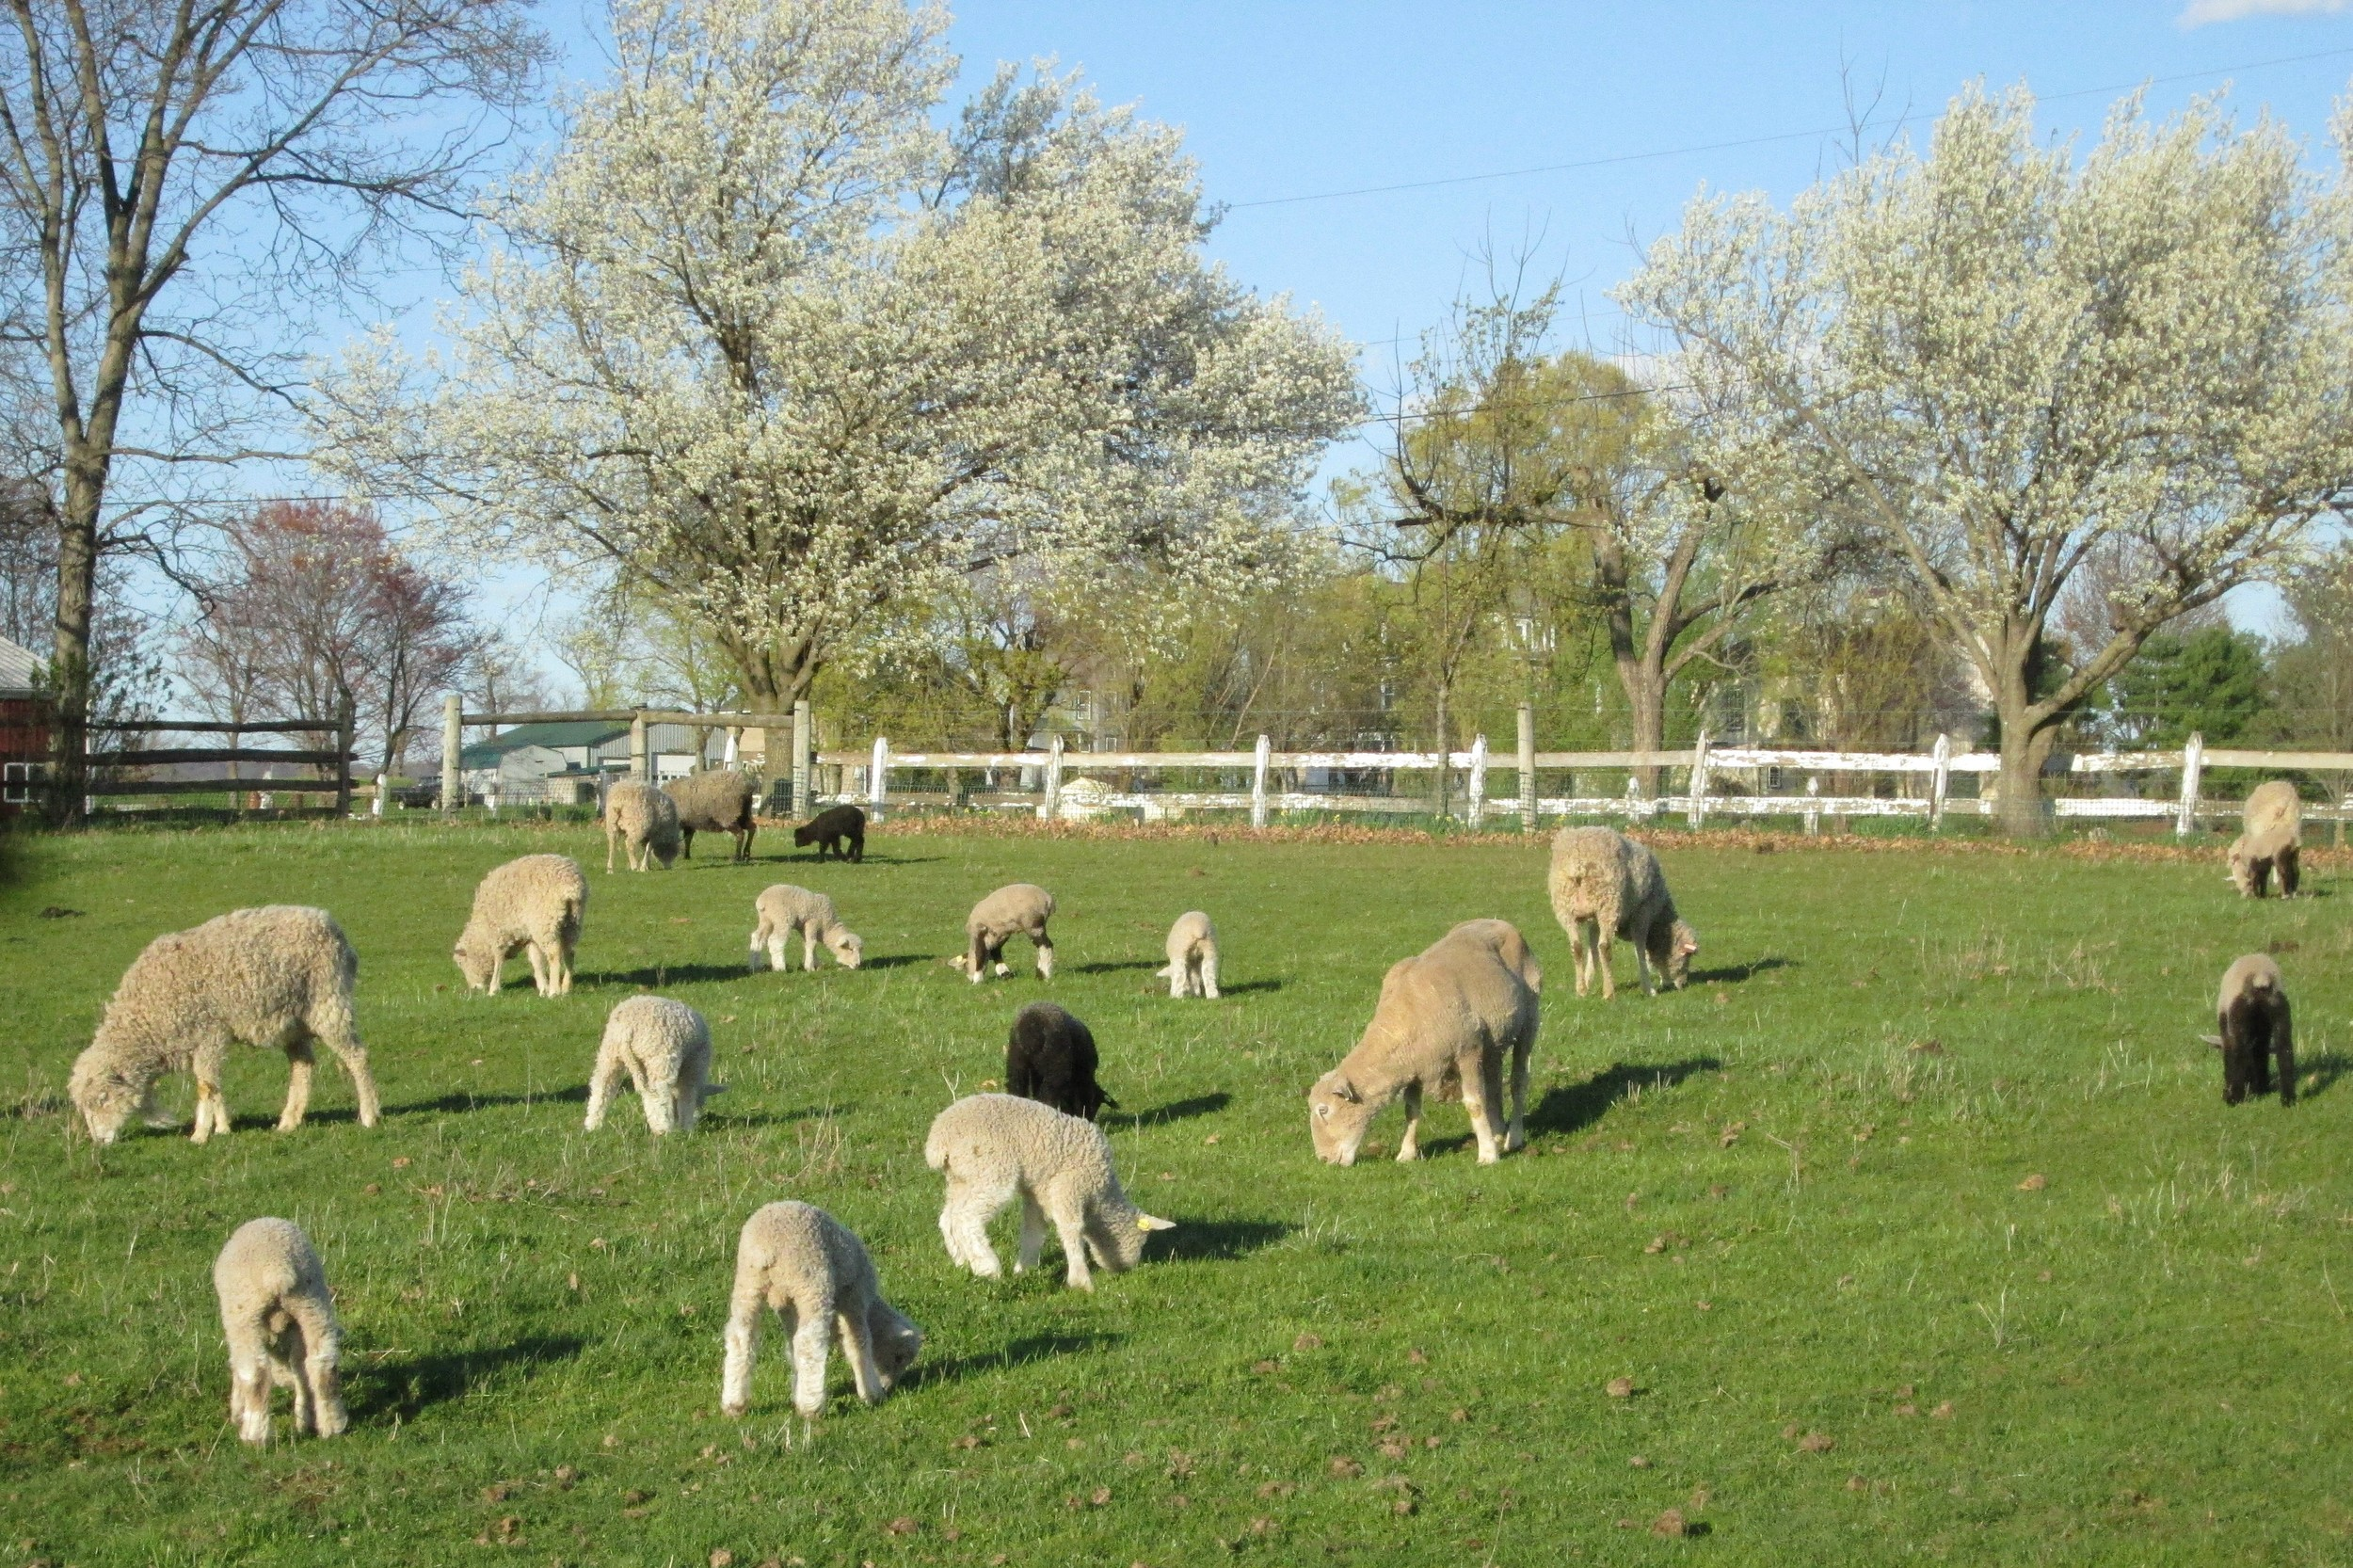 Ewes and lambs on spring pasture